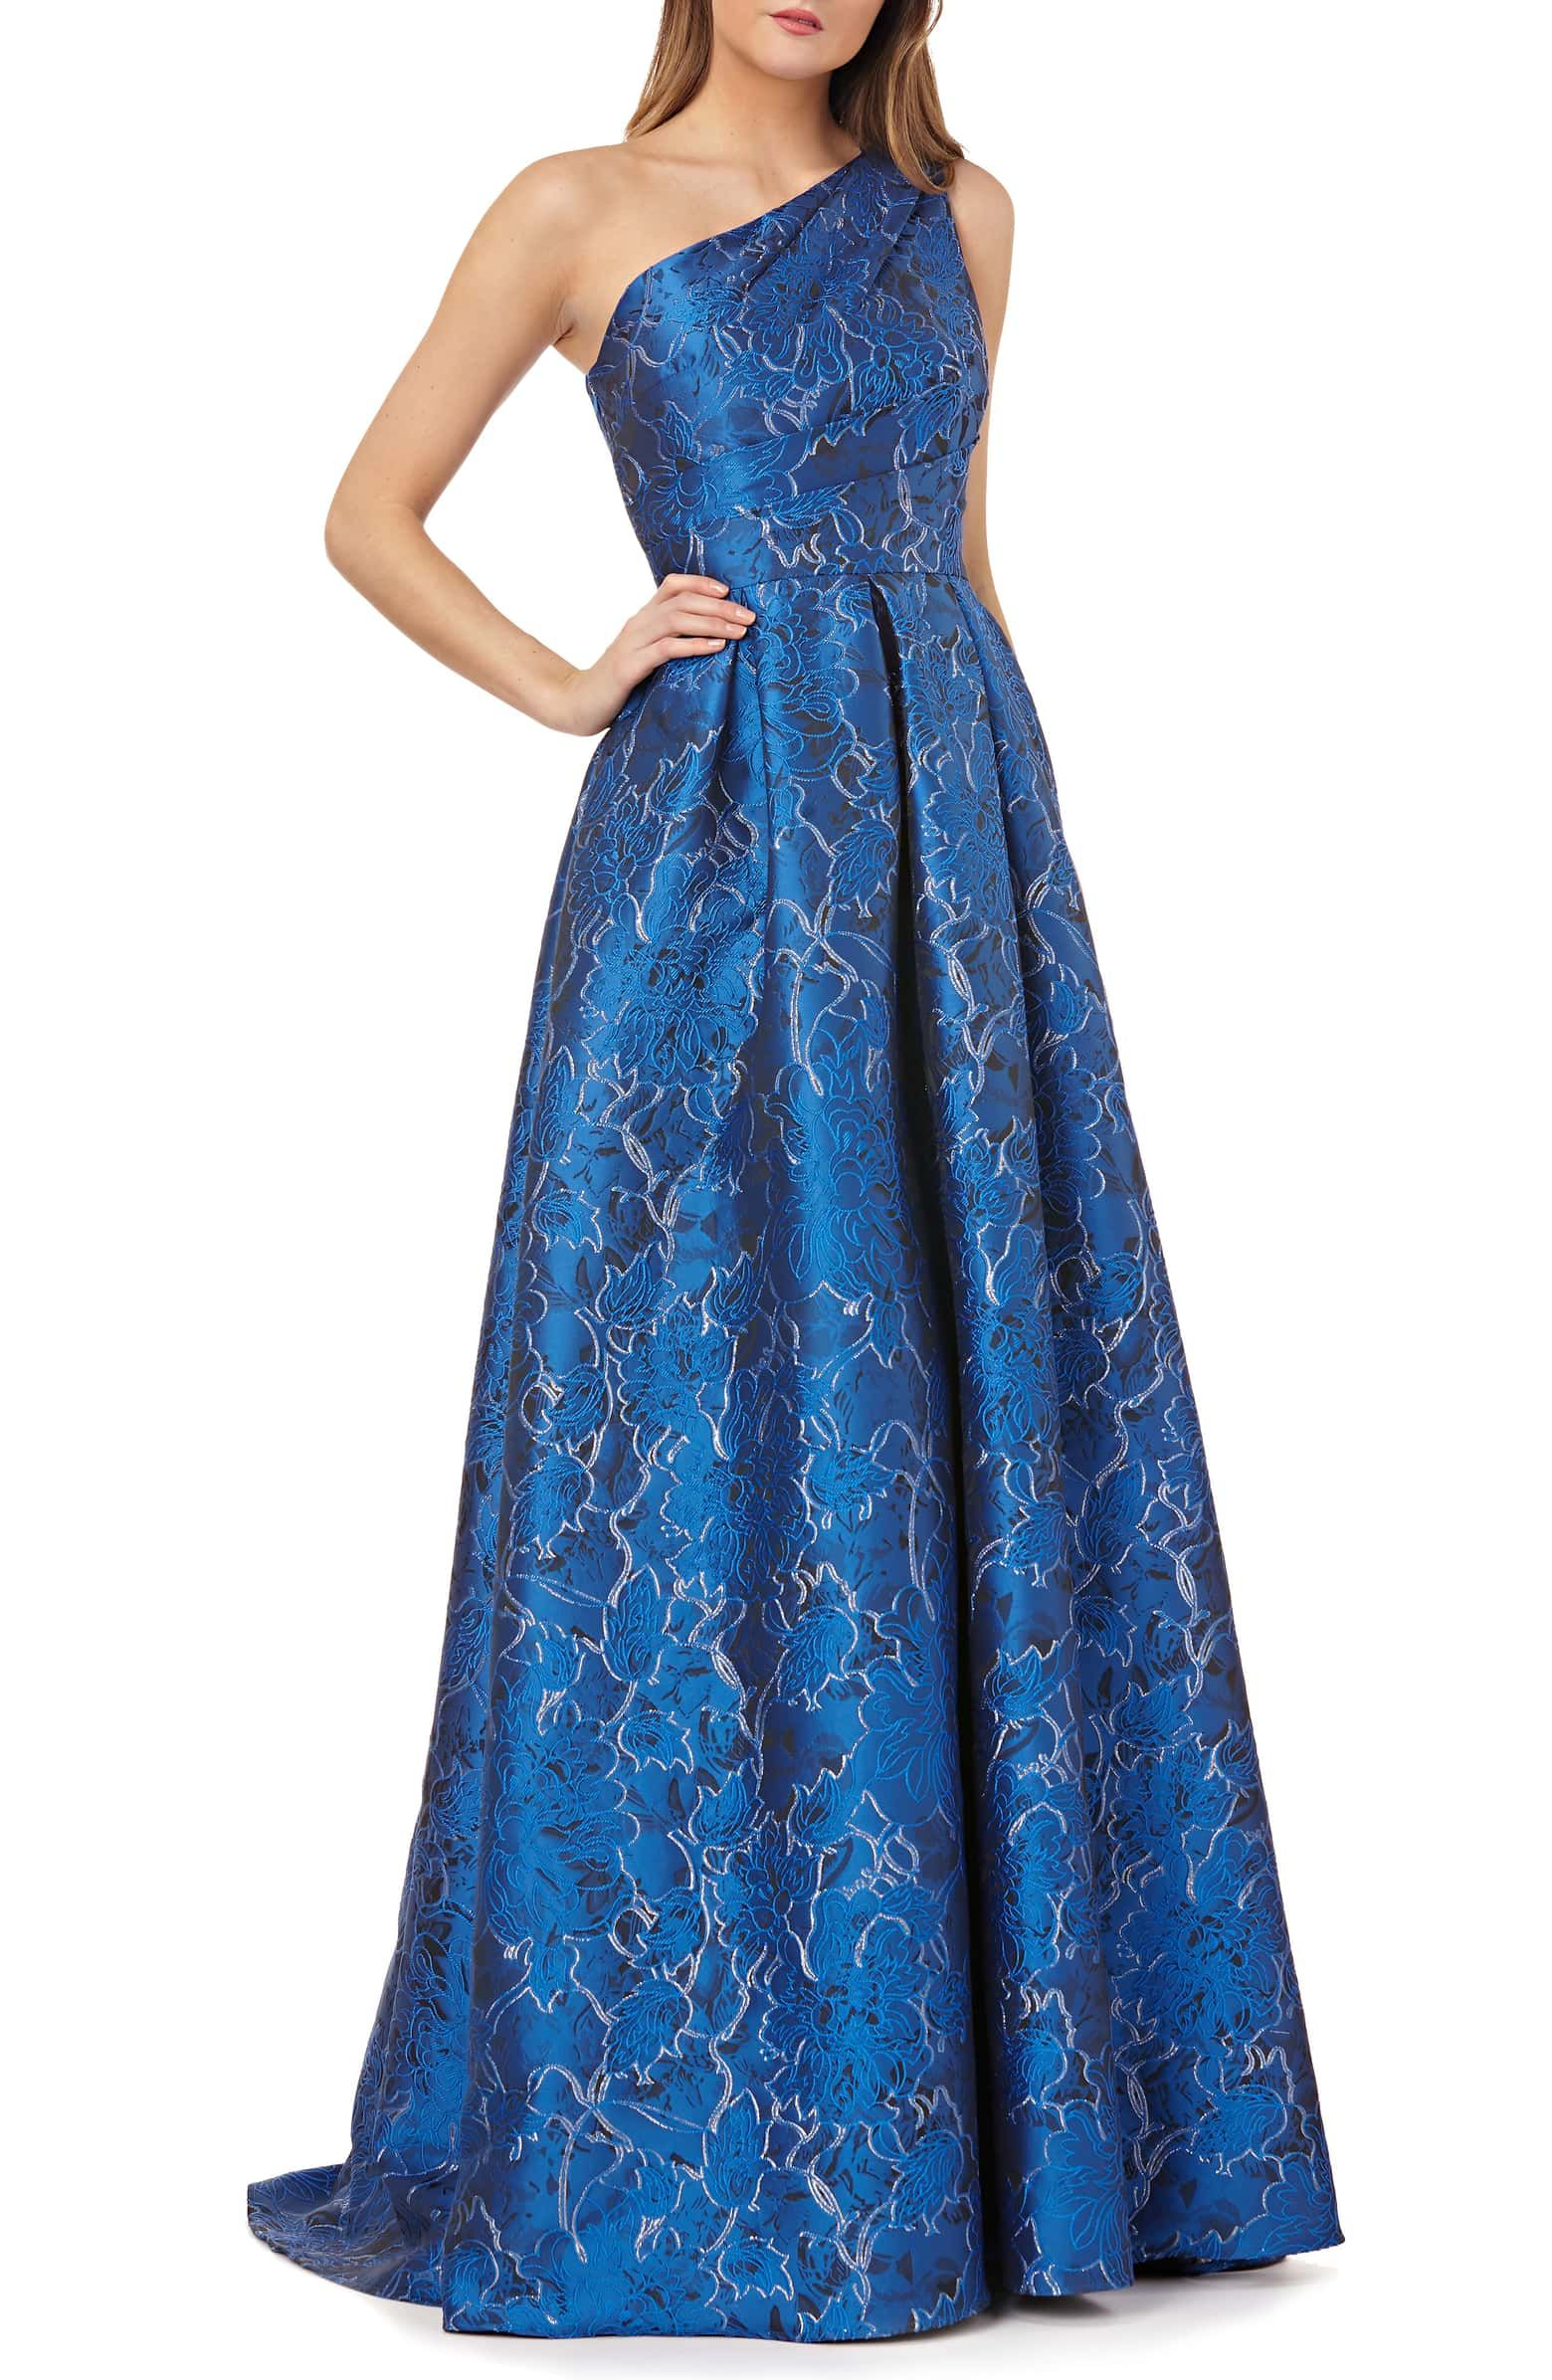 dcc125cb3a64 CARMEN MARC VALVO INFUSION One-Shoulder Ball Gown, Main, color, SAPPHIRE/  SIL